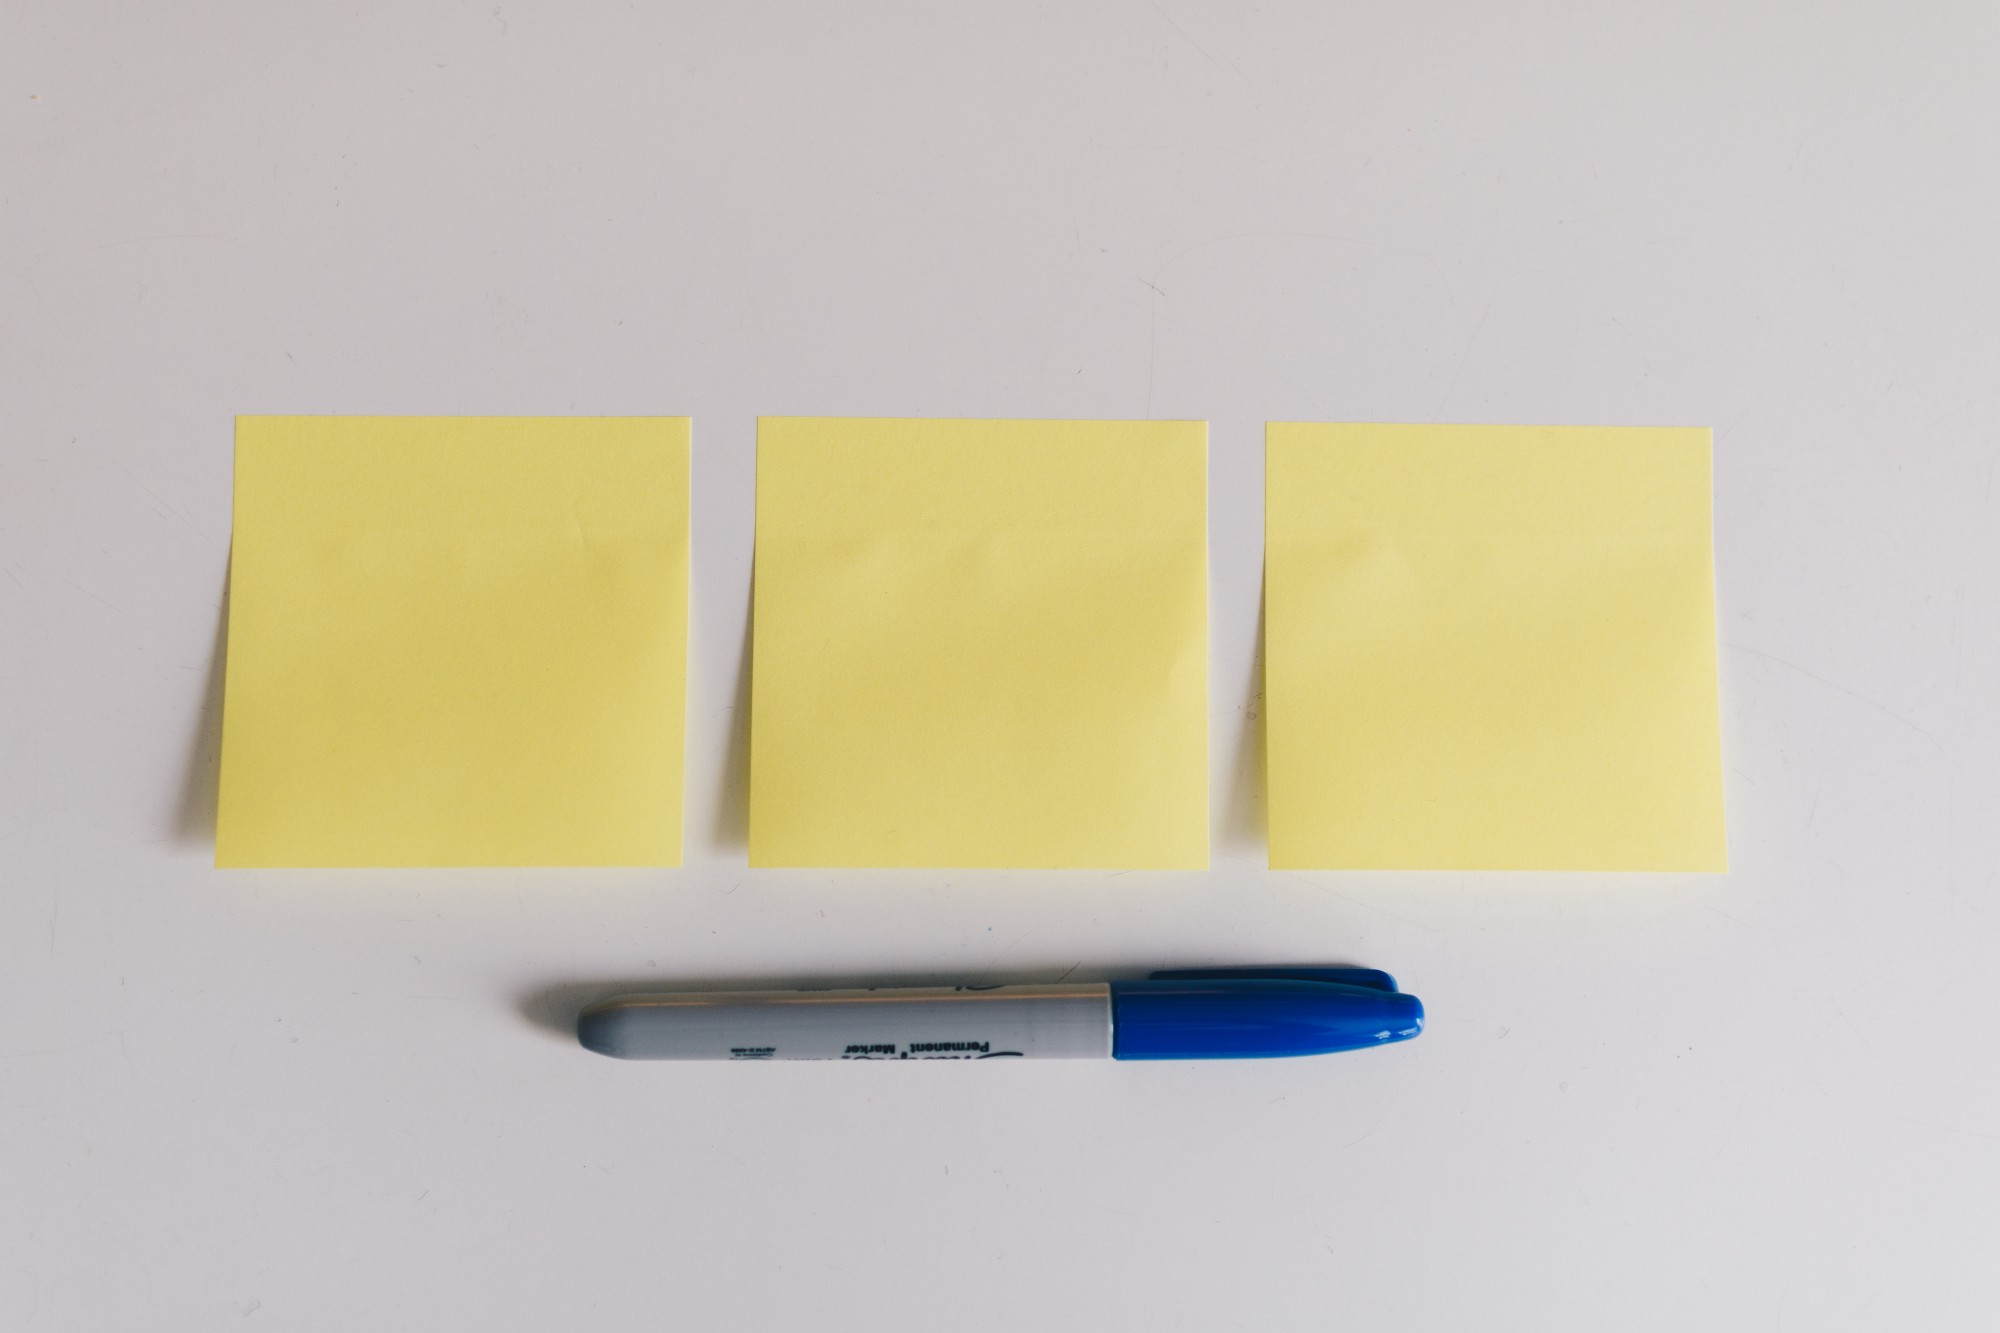 Blank sticky notes and a pen.